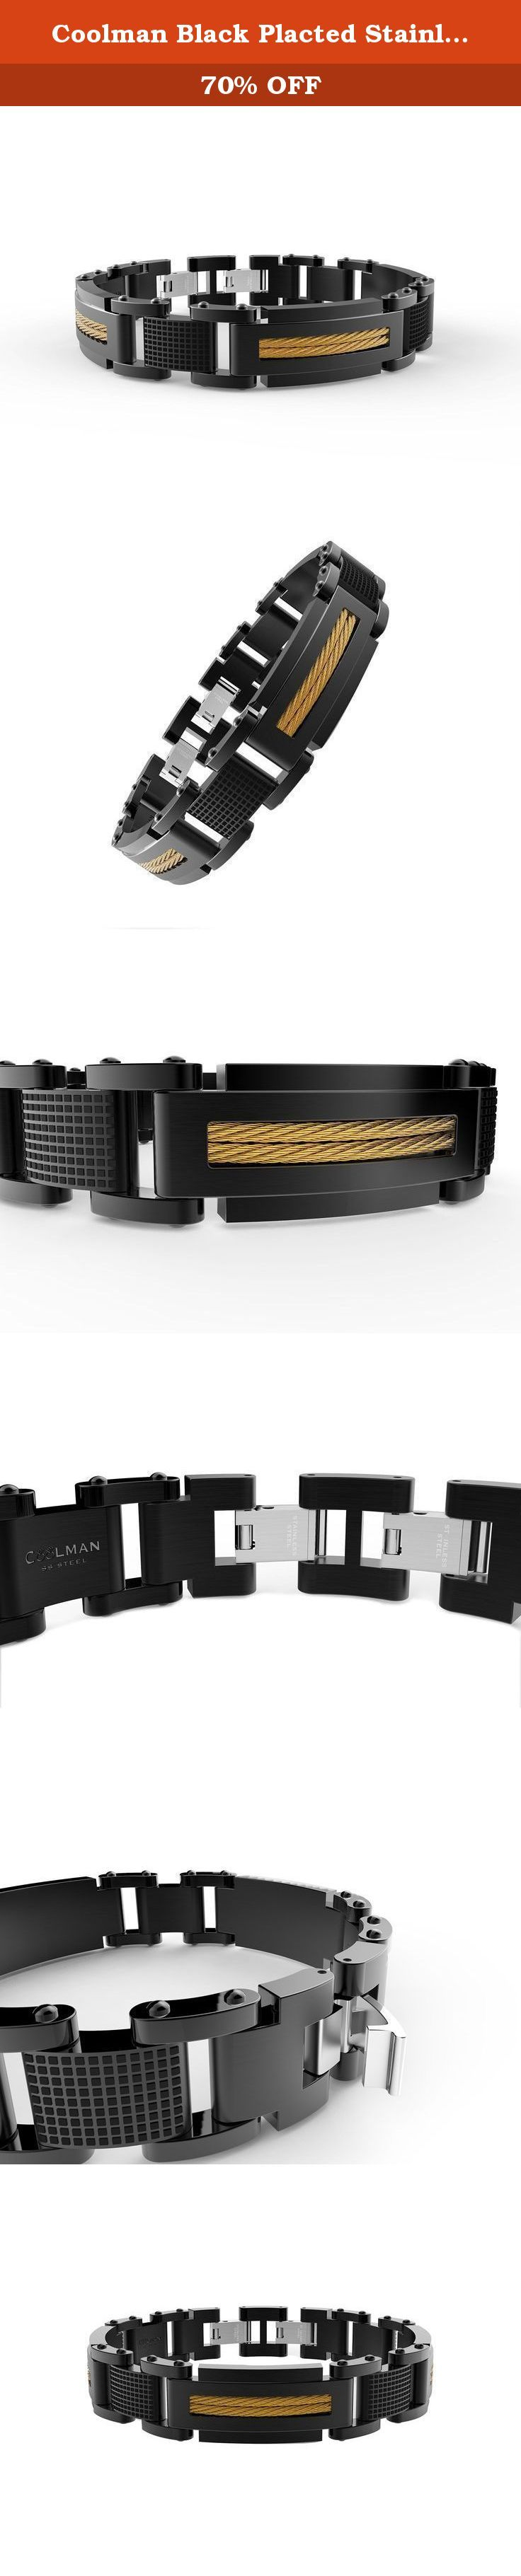 Coolman Black Placted Stainless Steel Cable Wire Inlaid Jewelry Fashion Bracelets Cross Bracelets. This beautiful Cable Wire inlayed Wrist Bracelet is 9inches in length. High quality---Hand Brus hed and Polished by professional workers.Produced under Serious Quality Control; CNC technology ;One by One Checking; Focus on Detail Processing. For the first sight, you must be attracted by the fashion design. Six Cable Wires inlayed into the Wrist Bracelet by CNC technology which special...